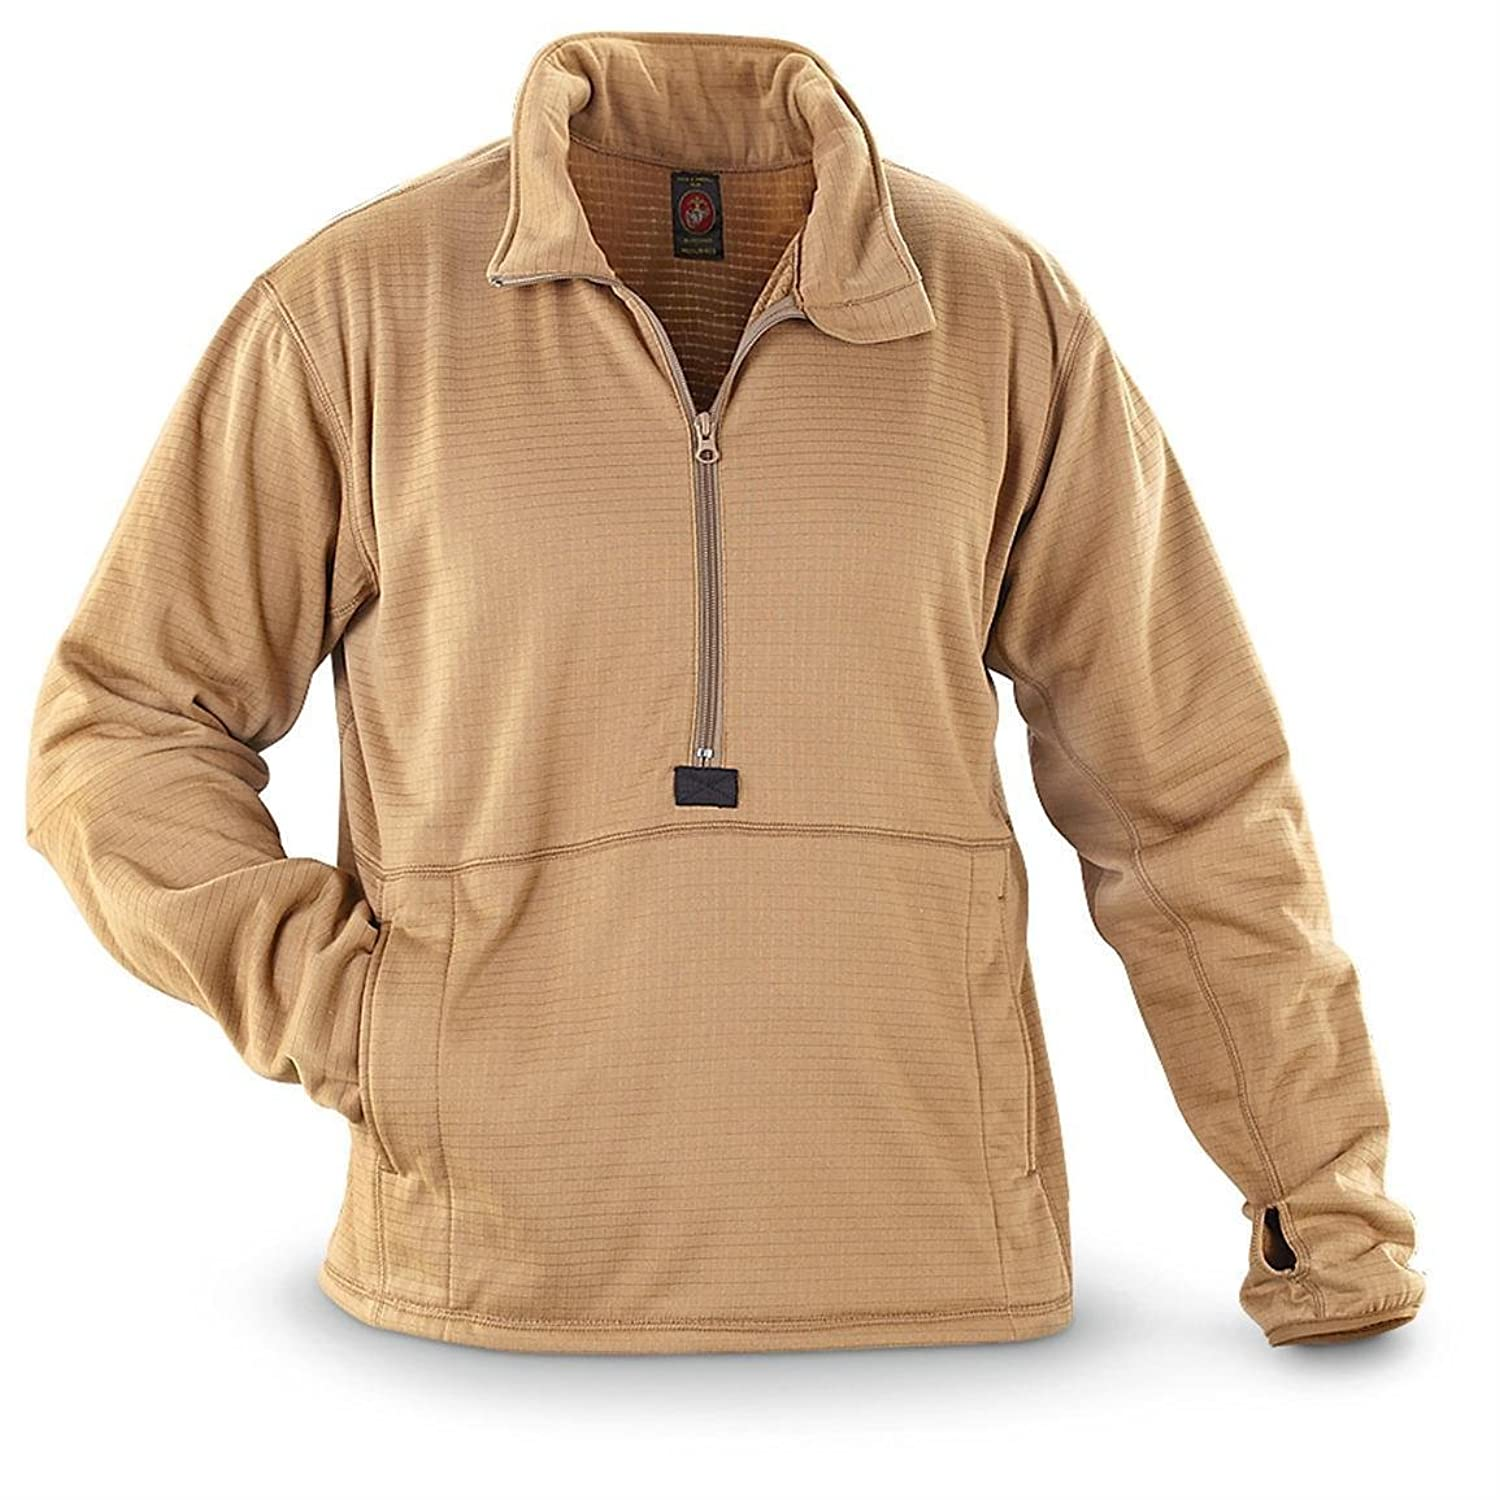 Amazon.com: Polartec Fleece Pullover, Coyote Brown, USMC Issue ...